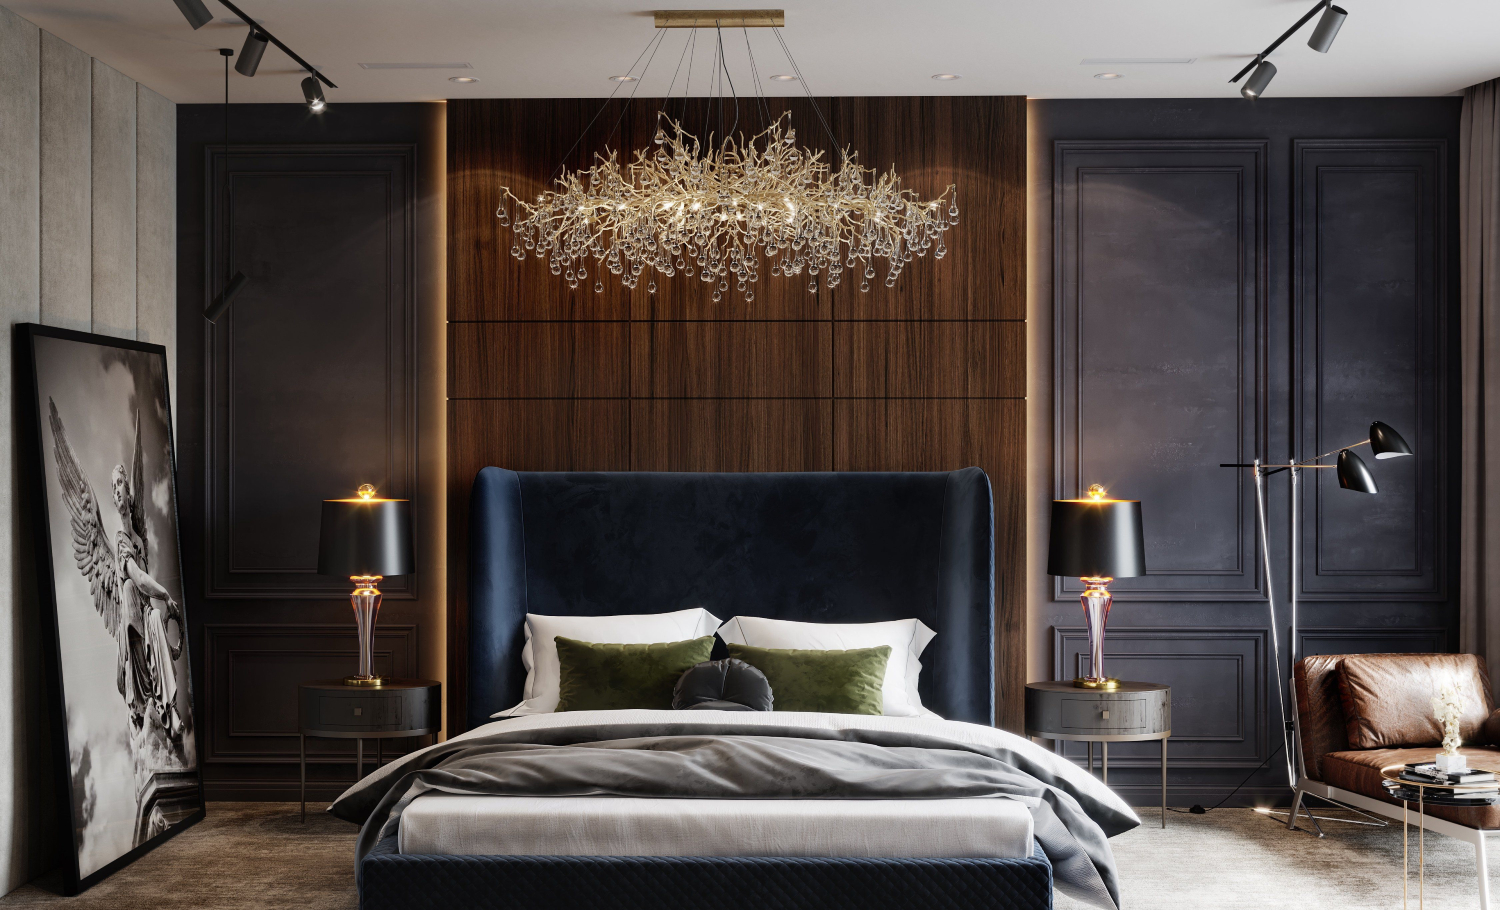 Home Decor Renovation Modern Bedroom Design Ideas To Inspire You